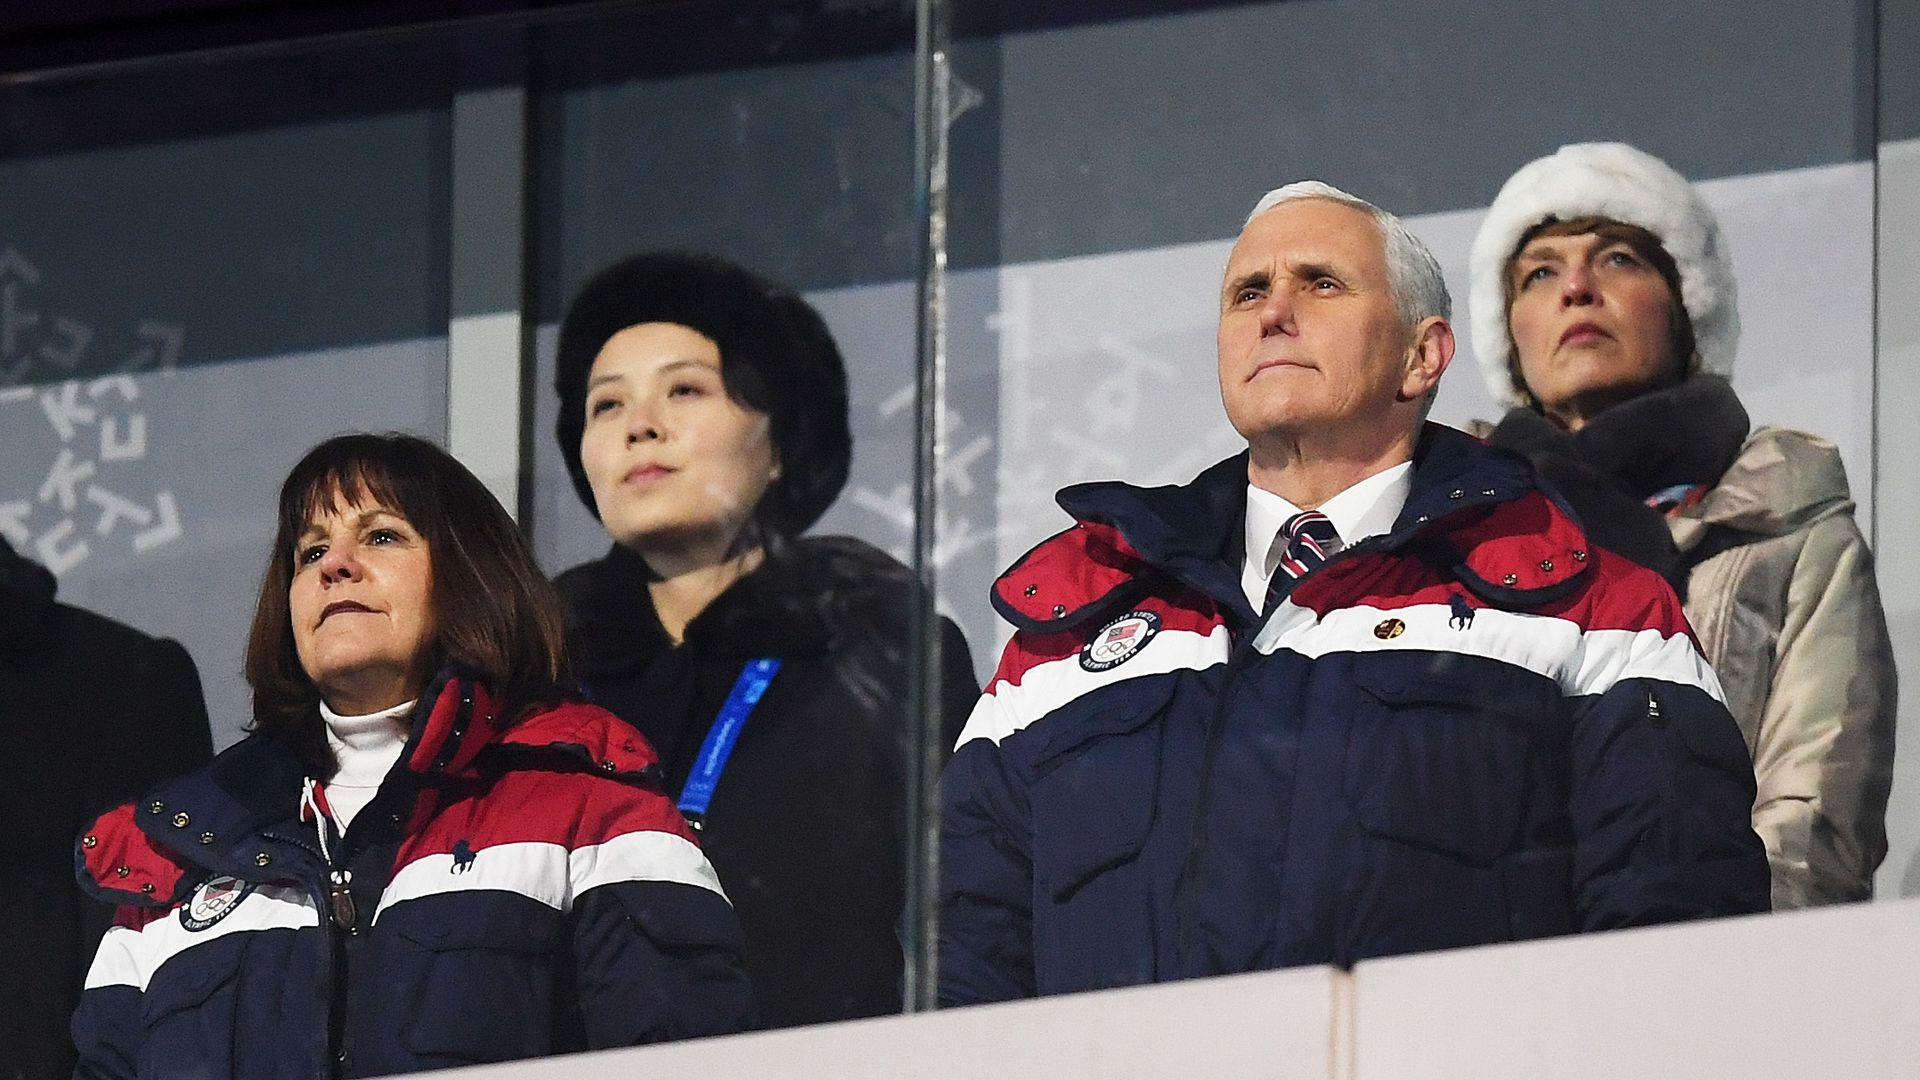 Mike Pence at the Winter Olympics